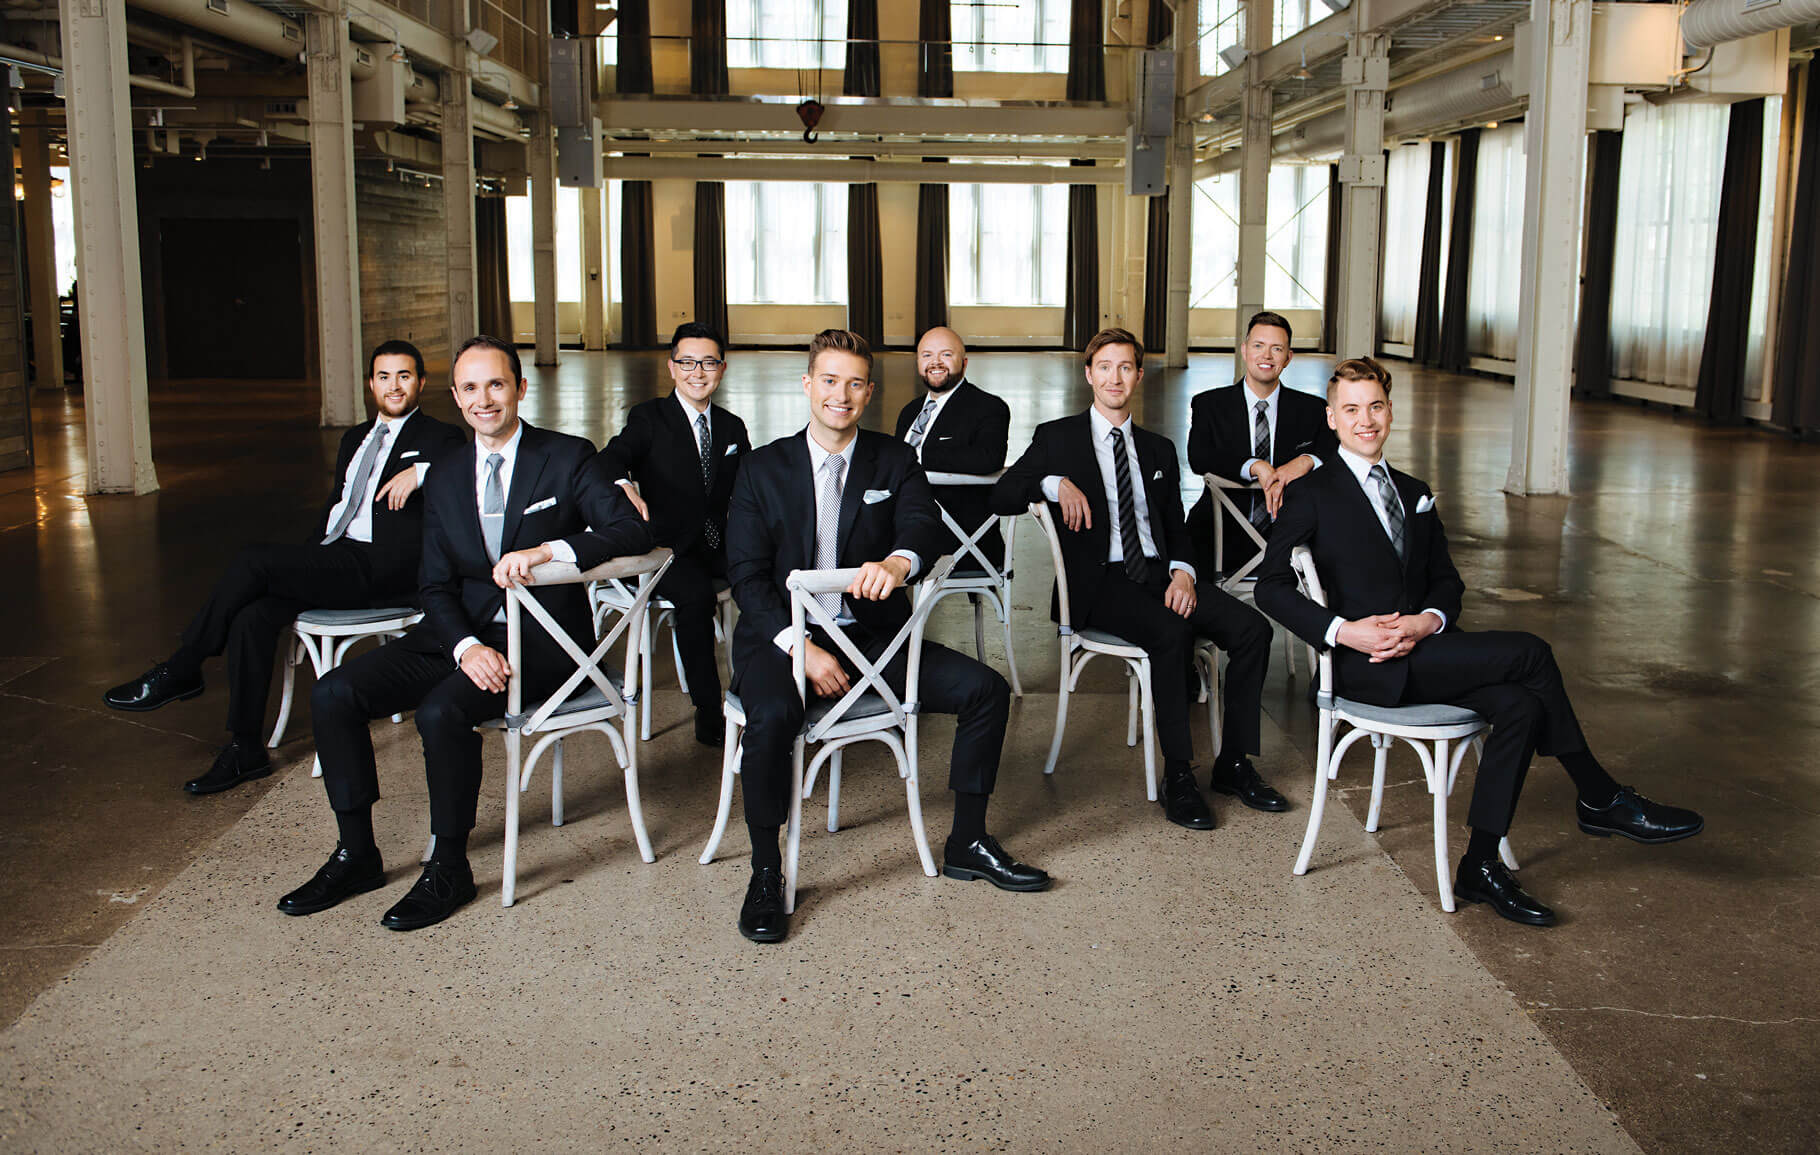 The current 8 singers of Cantus sitting scattered on white chairs in an empty warehouse